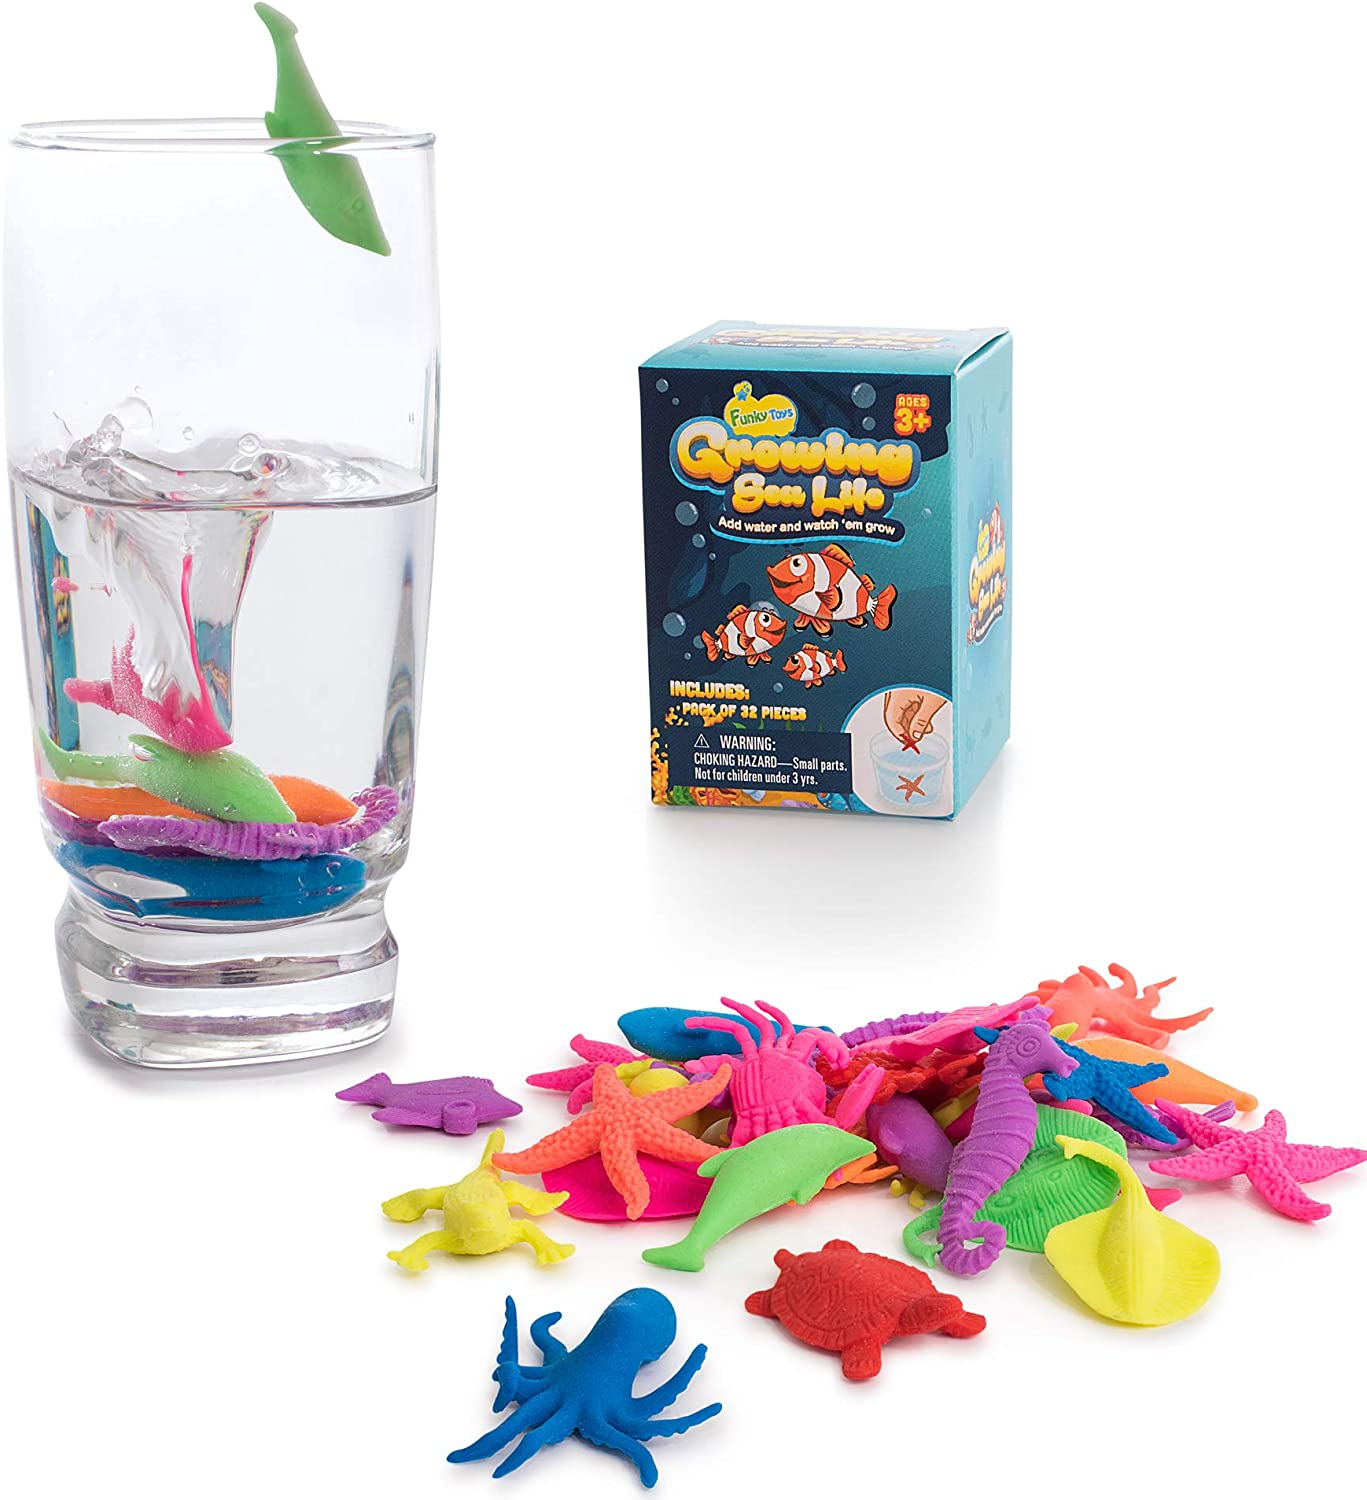 Water Growing Sea Creatures Animals - 32 Pack - Expandable Oceanic Under The Sea Animals - Fun in The Bathtub - Party Supplies Favors - Gift for Toddlers Children Boys and Girls - Easter Egg Fillers